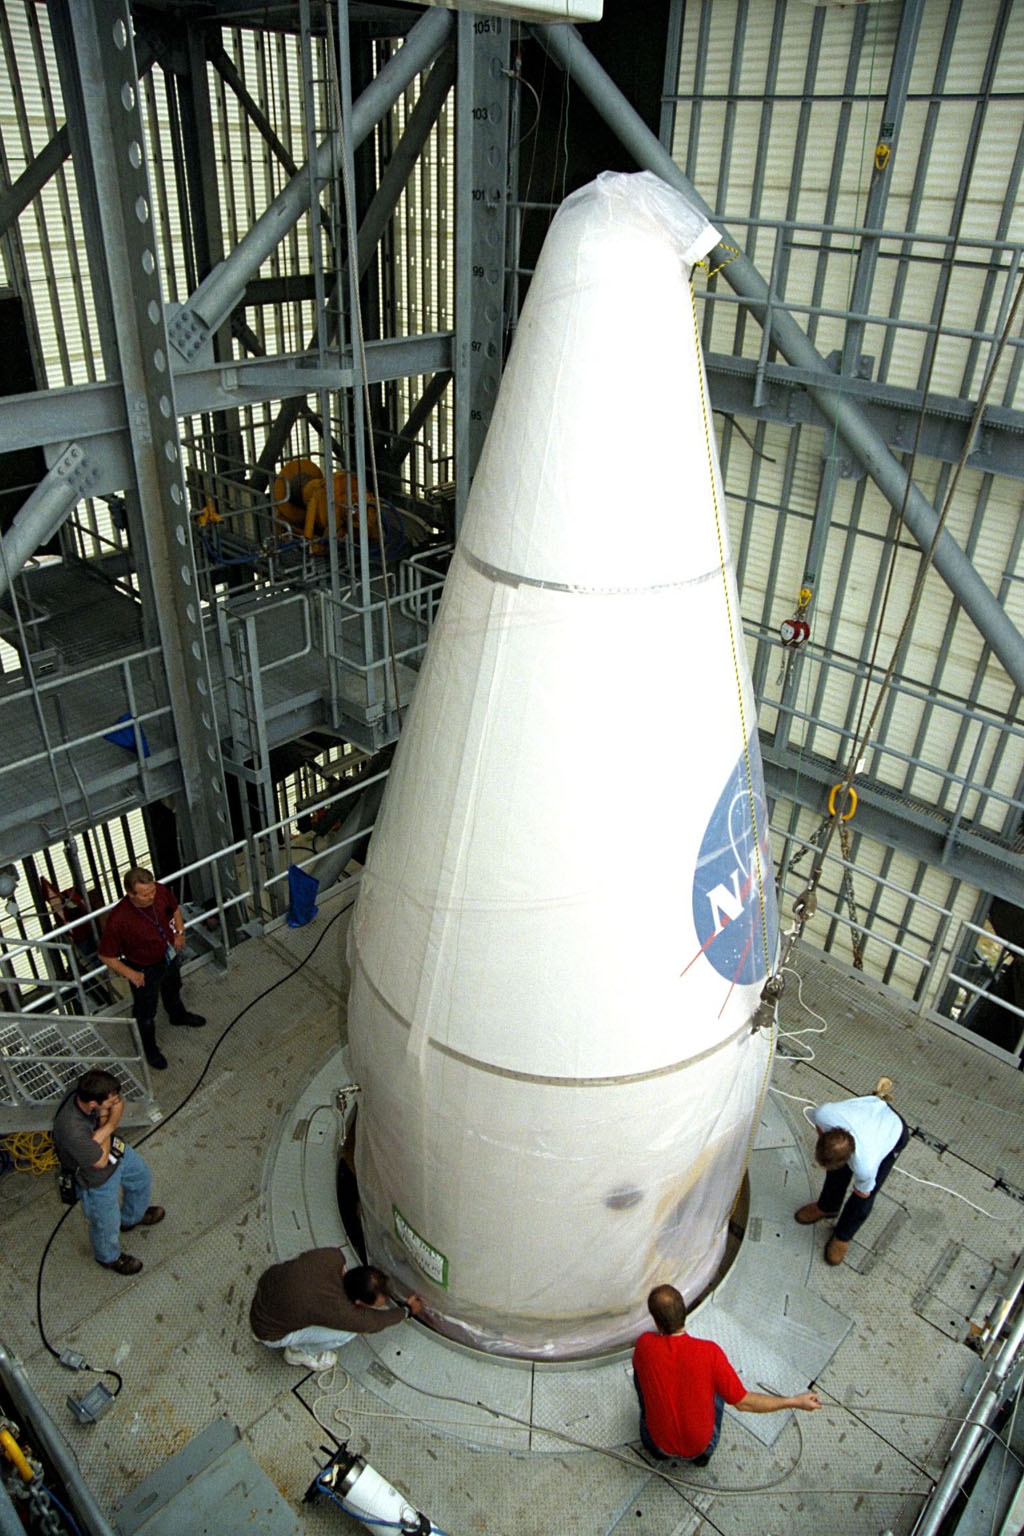 NASA?s Lunar Prospector is mated to a Lockheed Martin Athena II launch vehicle at Cape Canaveral Air Station?s Launch Complex 46. Lunar Prospector, built for the NASA Ames Research Center by Lockheed Martin, is a spin-stabilized spacecraft designed to provide NASA the first global maps of the Moon?s surface and its gravitational magnetic fields. It will orbit the Moon at an altitude of approximately 63 miles during a one-year mission. The launch of Lunar Prospector is scheduled for Jan. 5, 1998 at 8:31 p.m. EST